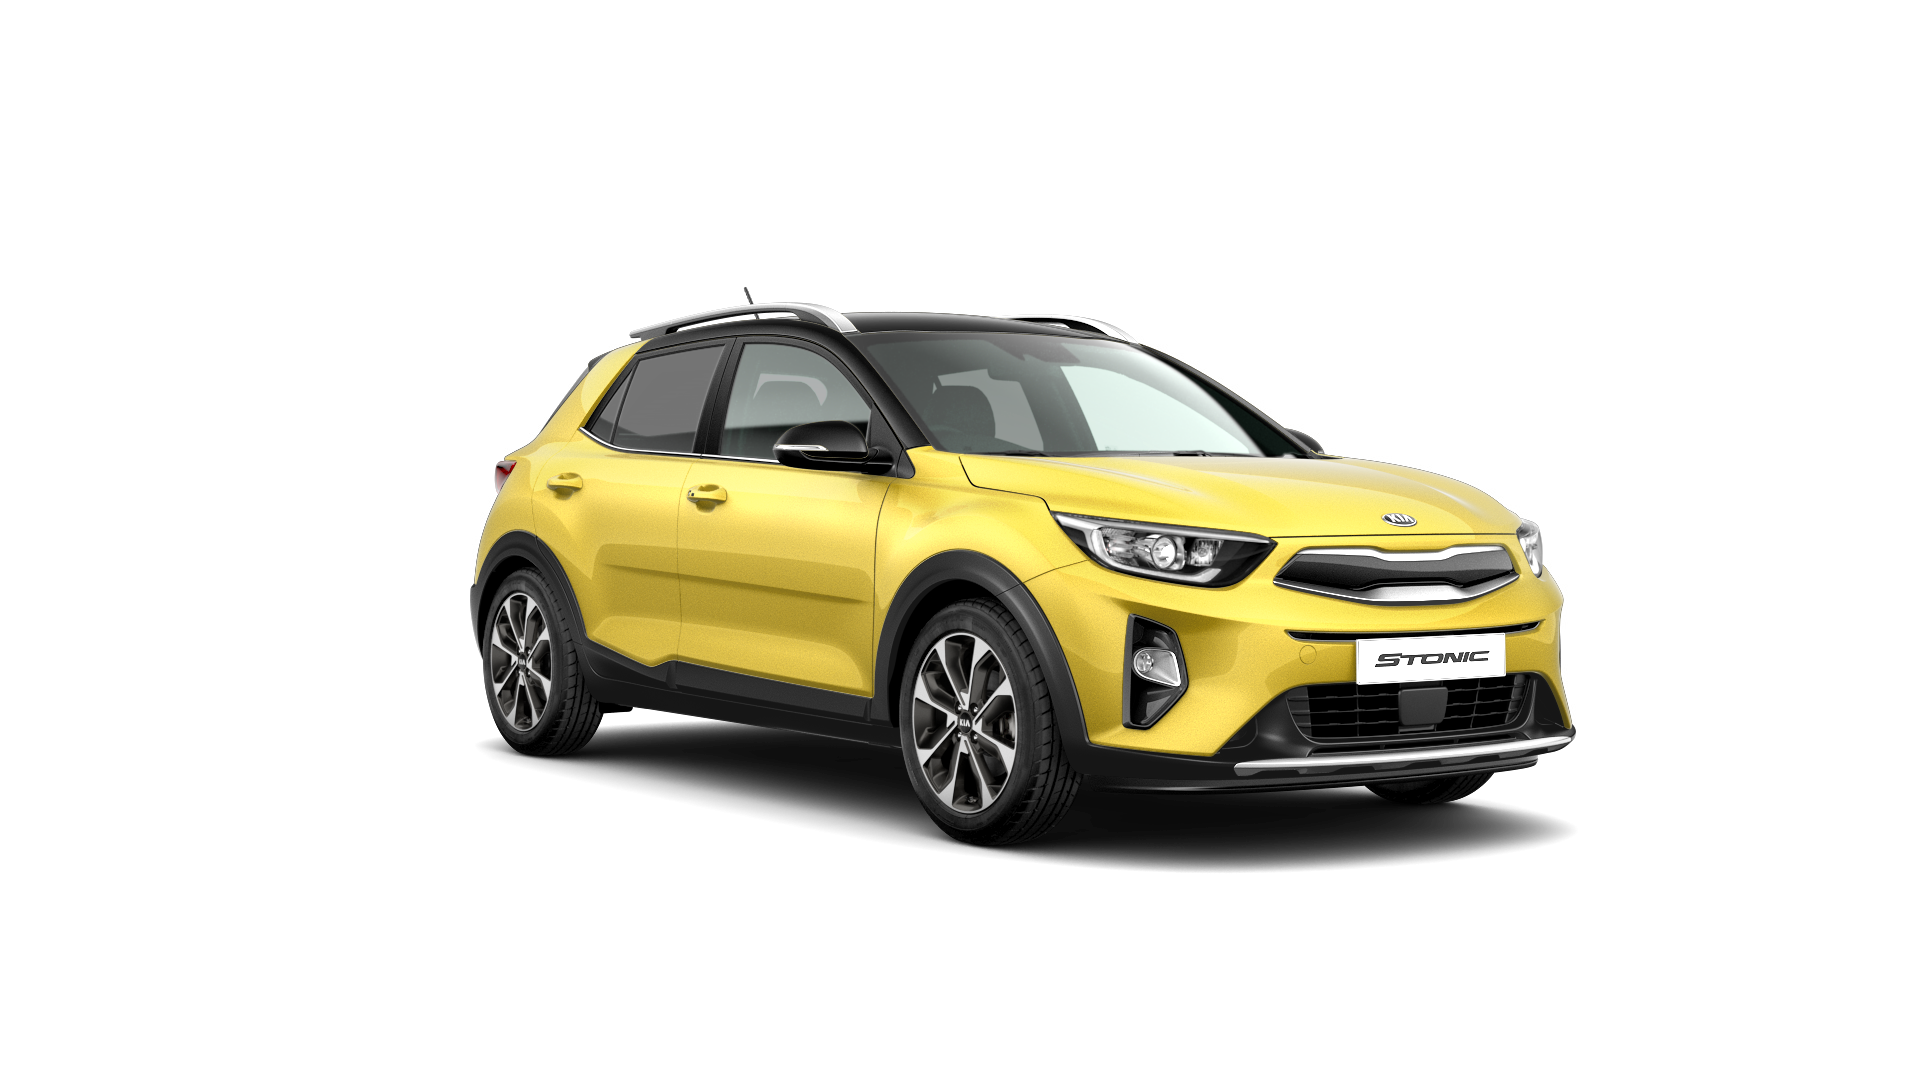 Kia Stonic First Edition - Zest Yellow / Black